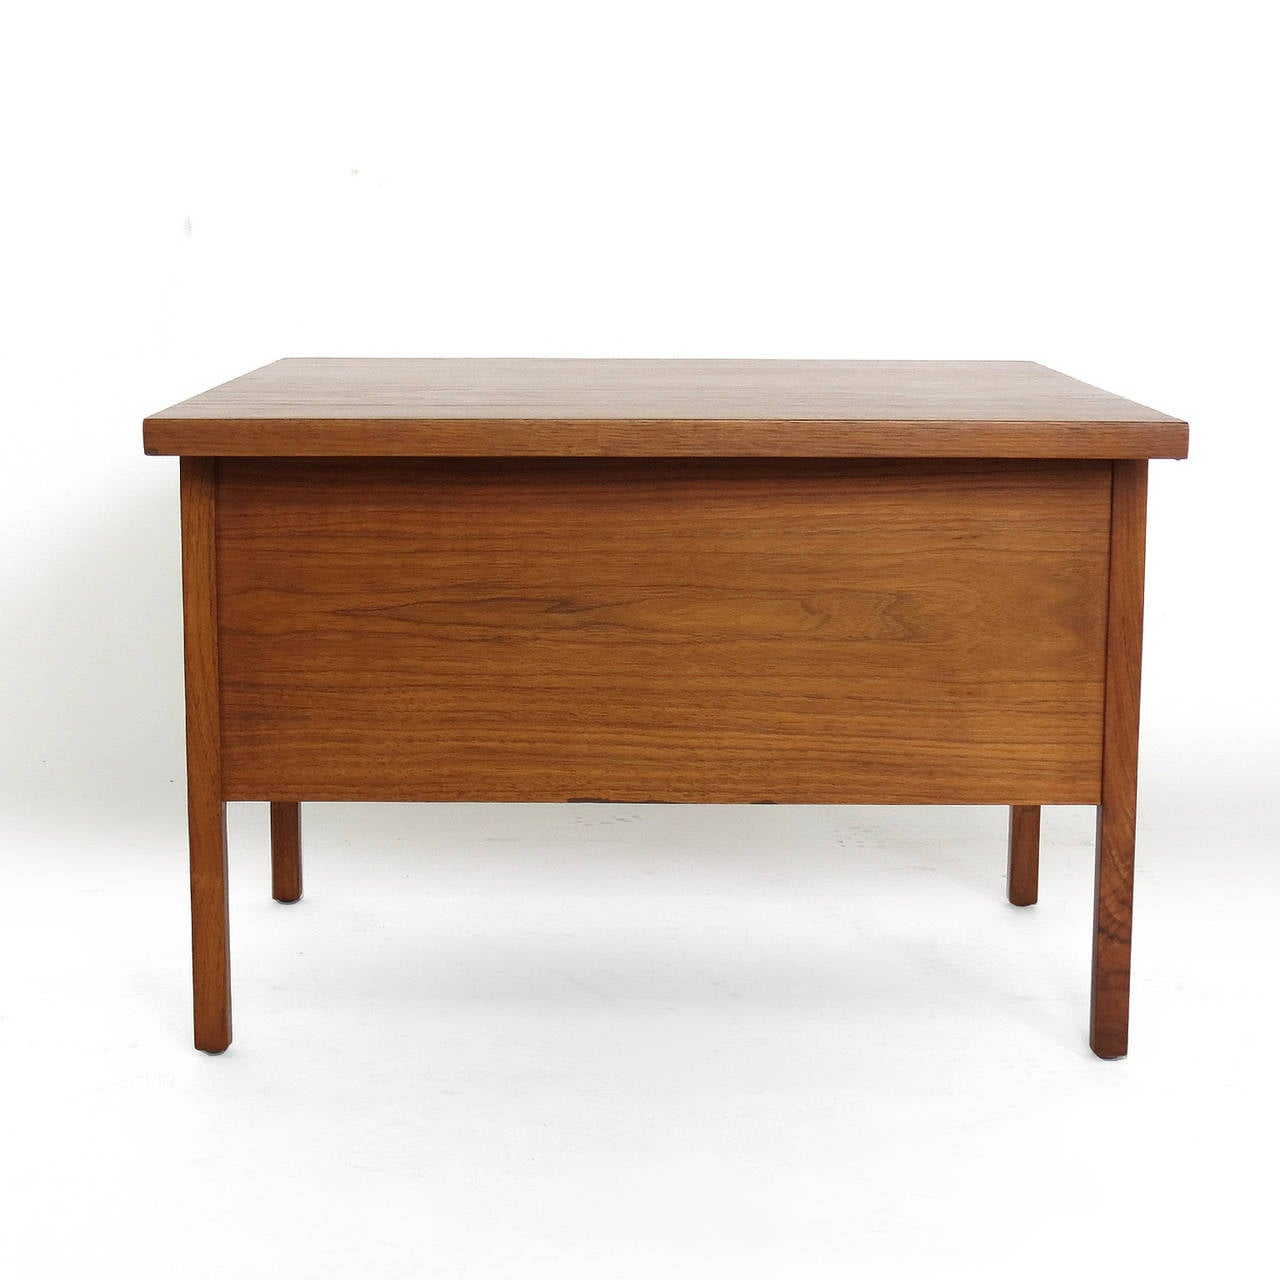 John Keal Coffee Table With Folding Side Tables At 1stdibs